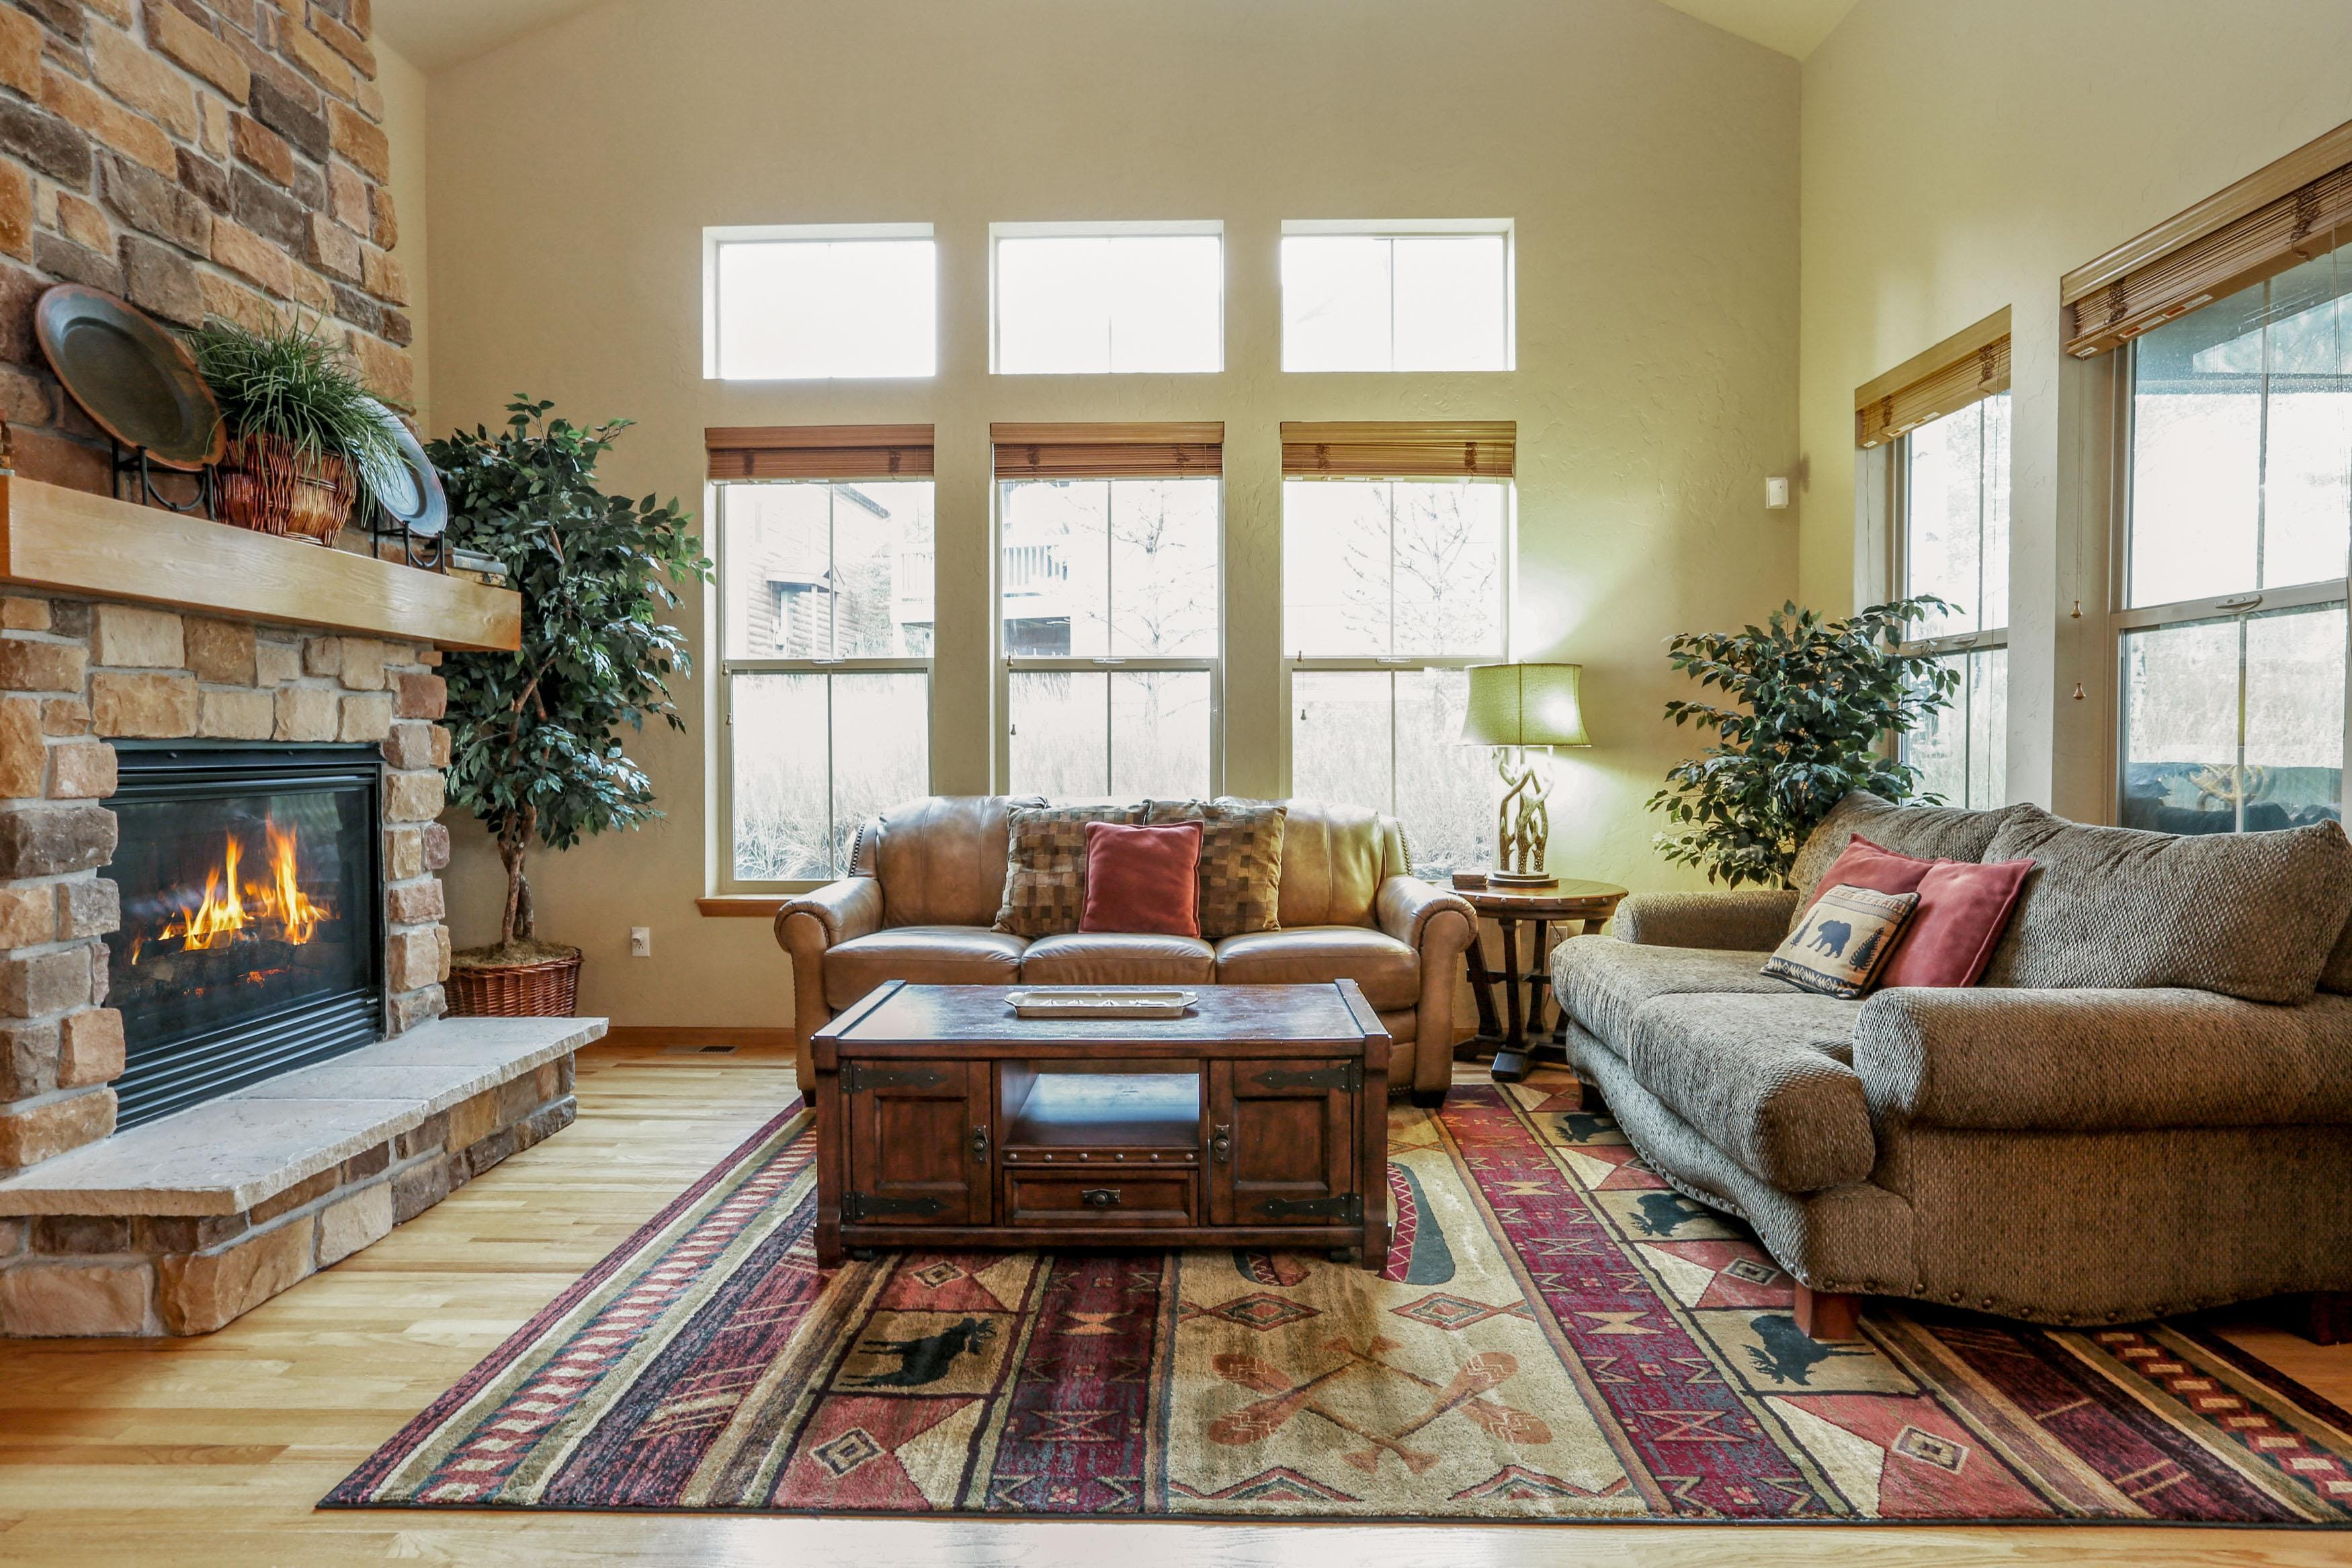 Welcome to your Granby vacation rental! Relax in your living area complete with a stone fireplace, vaulted ceilings, sleeper sofa, and love seat.